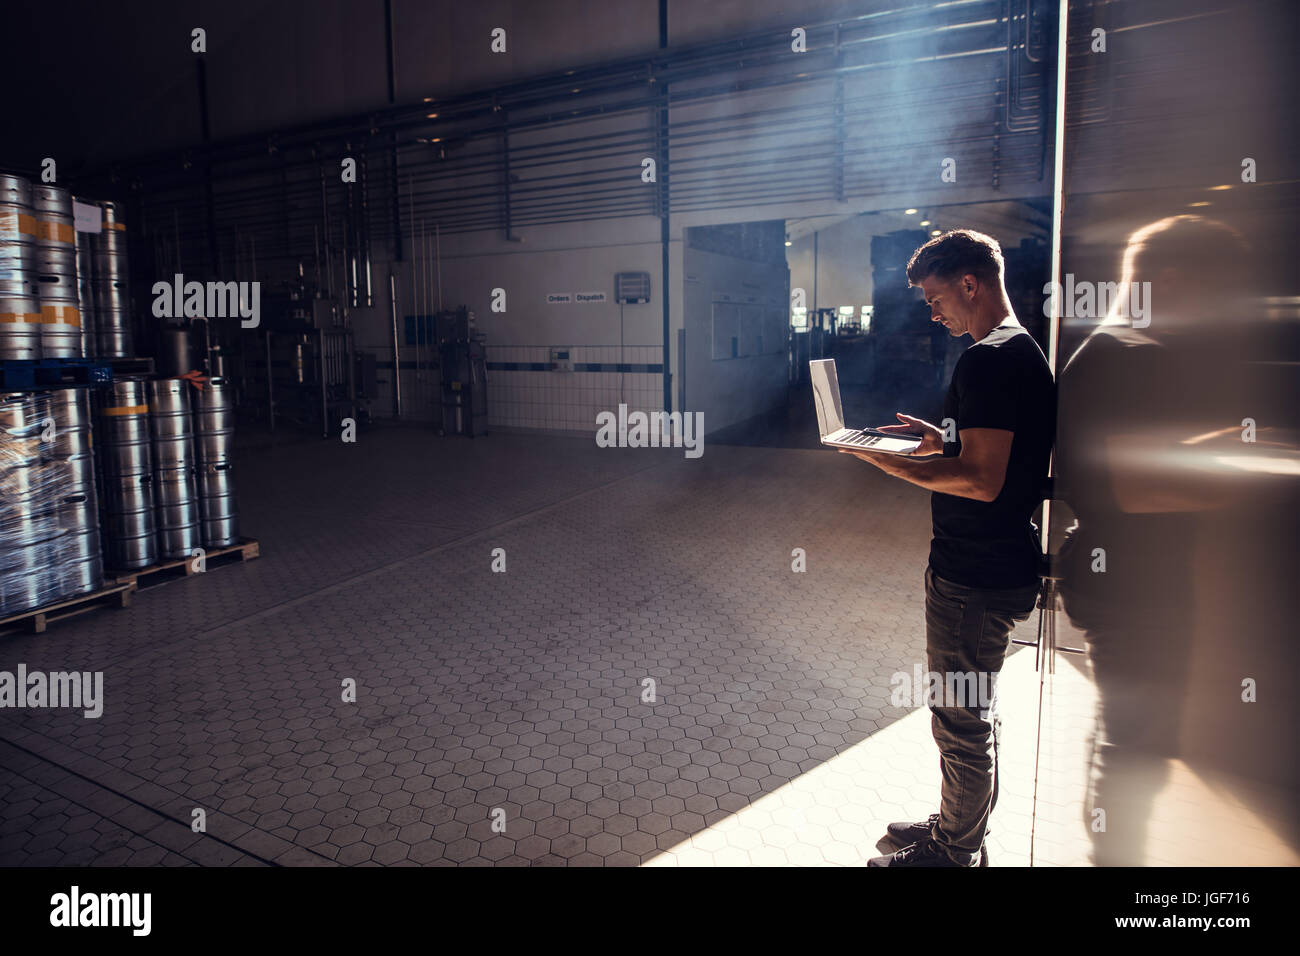 Horizontal shot of young man standing in brewery factory working on laptop. Brewery factory owner using laptop. - Stock Image